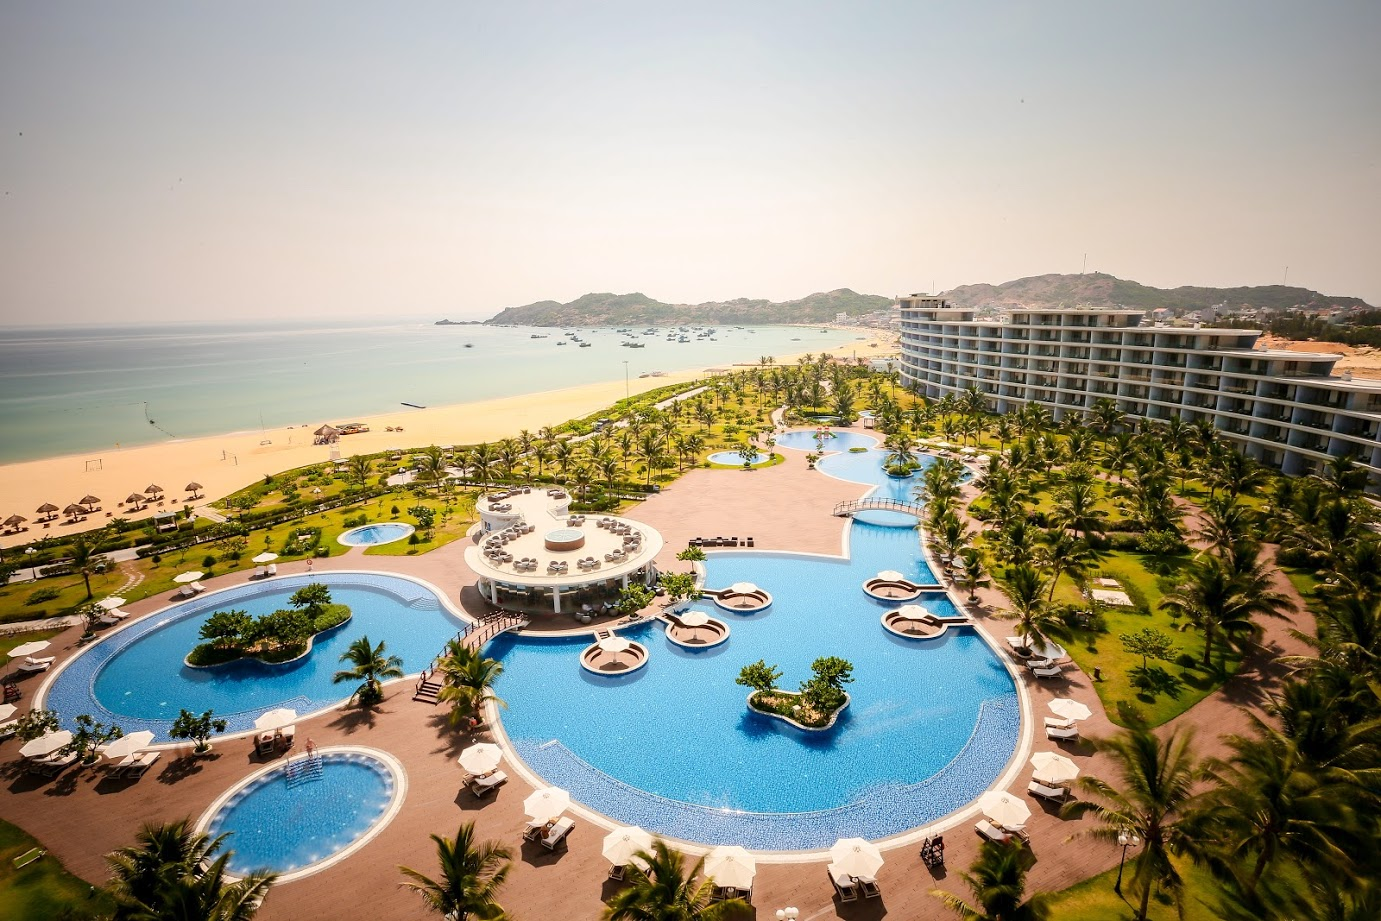 /files/images/FLC%20Hotel%20Quy%20Nhon/nh-2.jpg